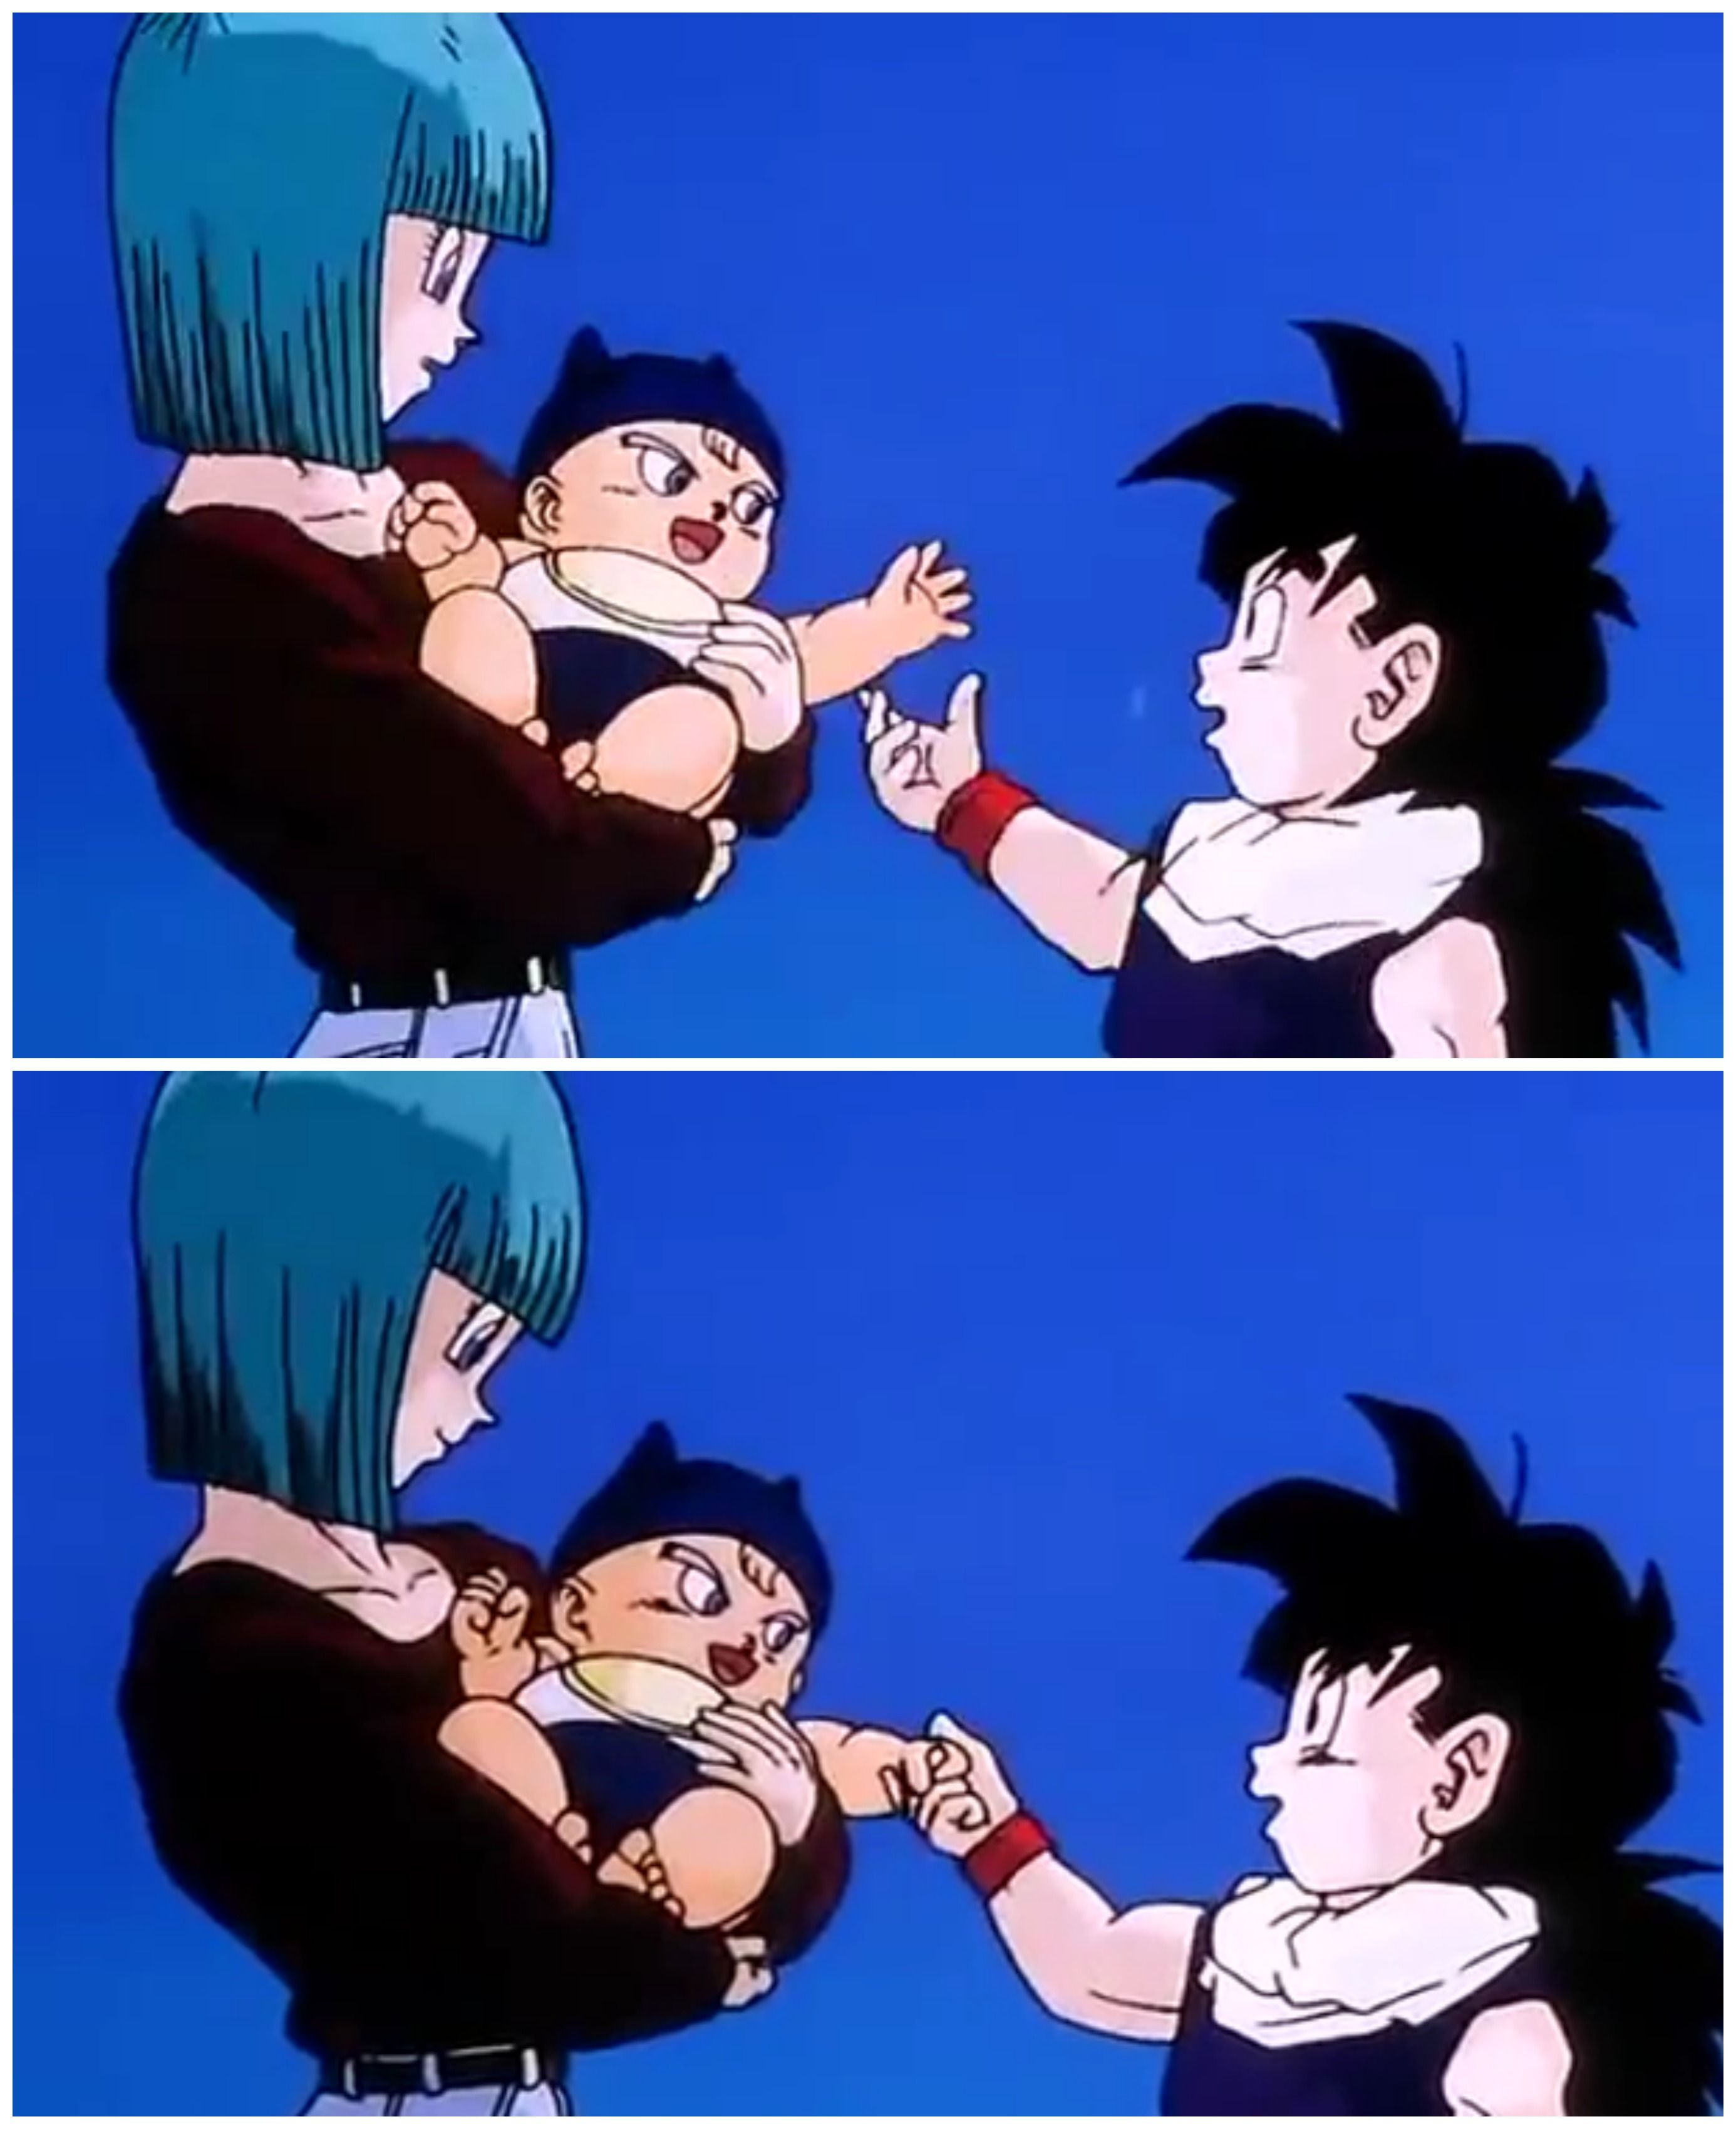 Baby Trunks And Gohan :D